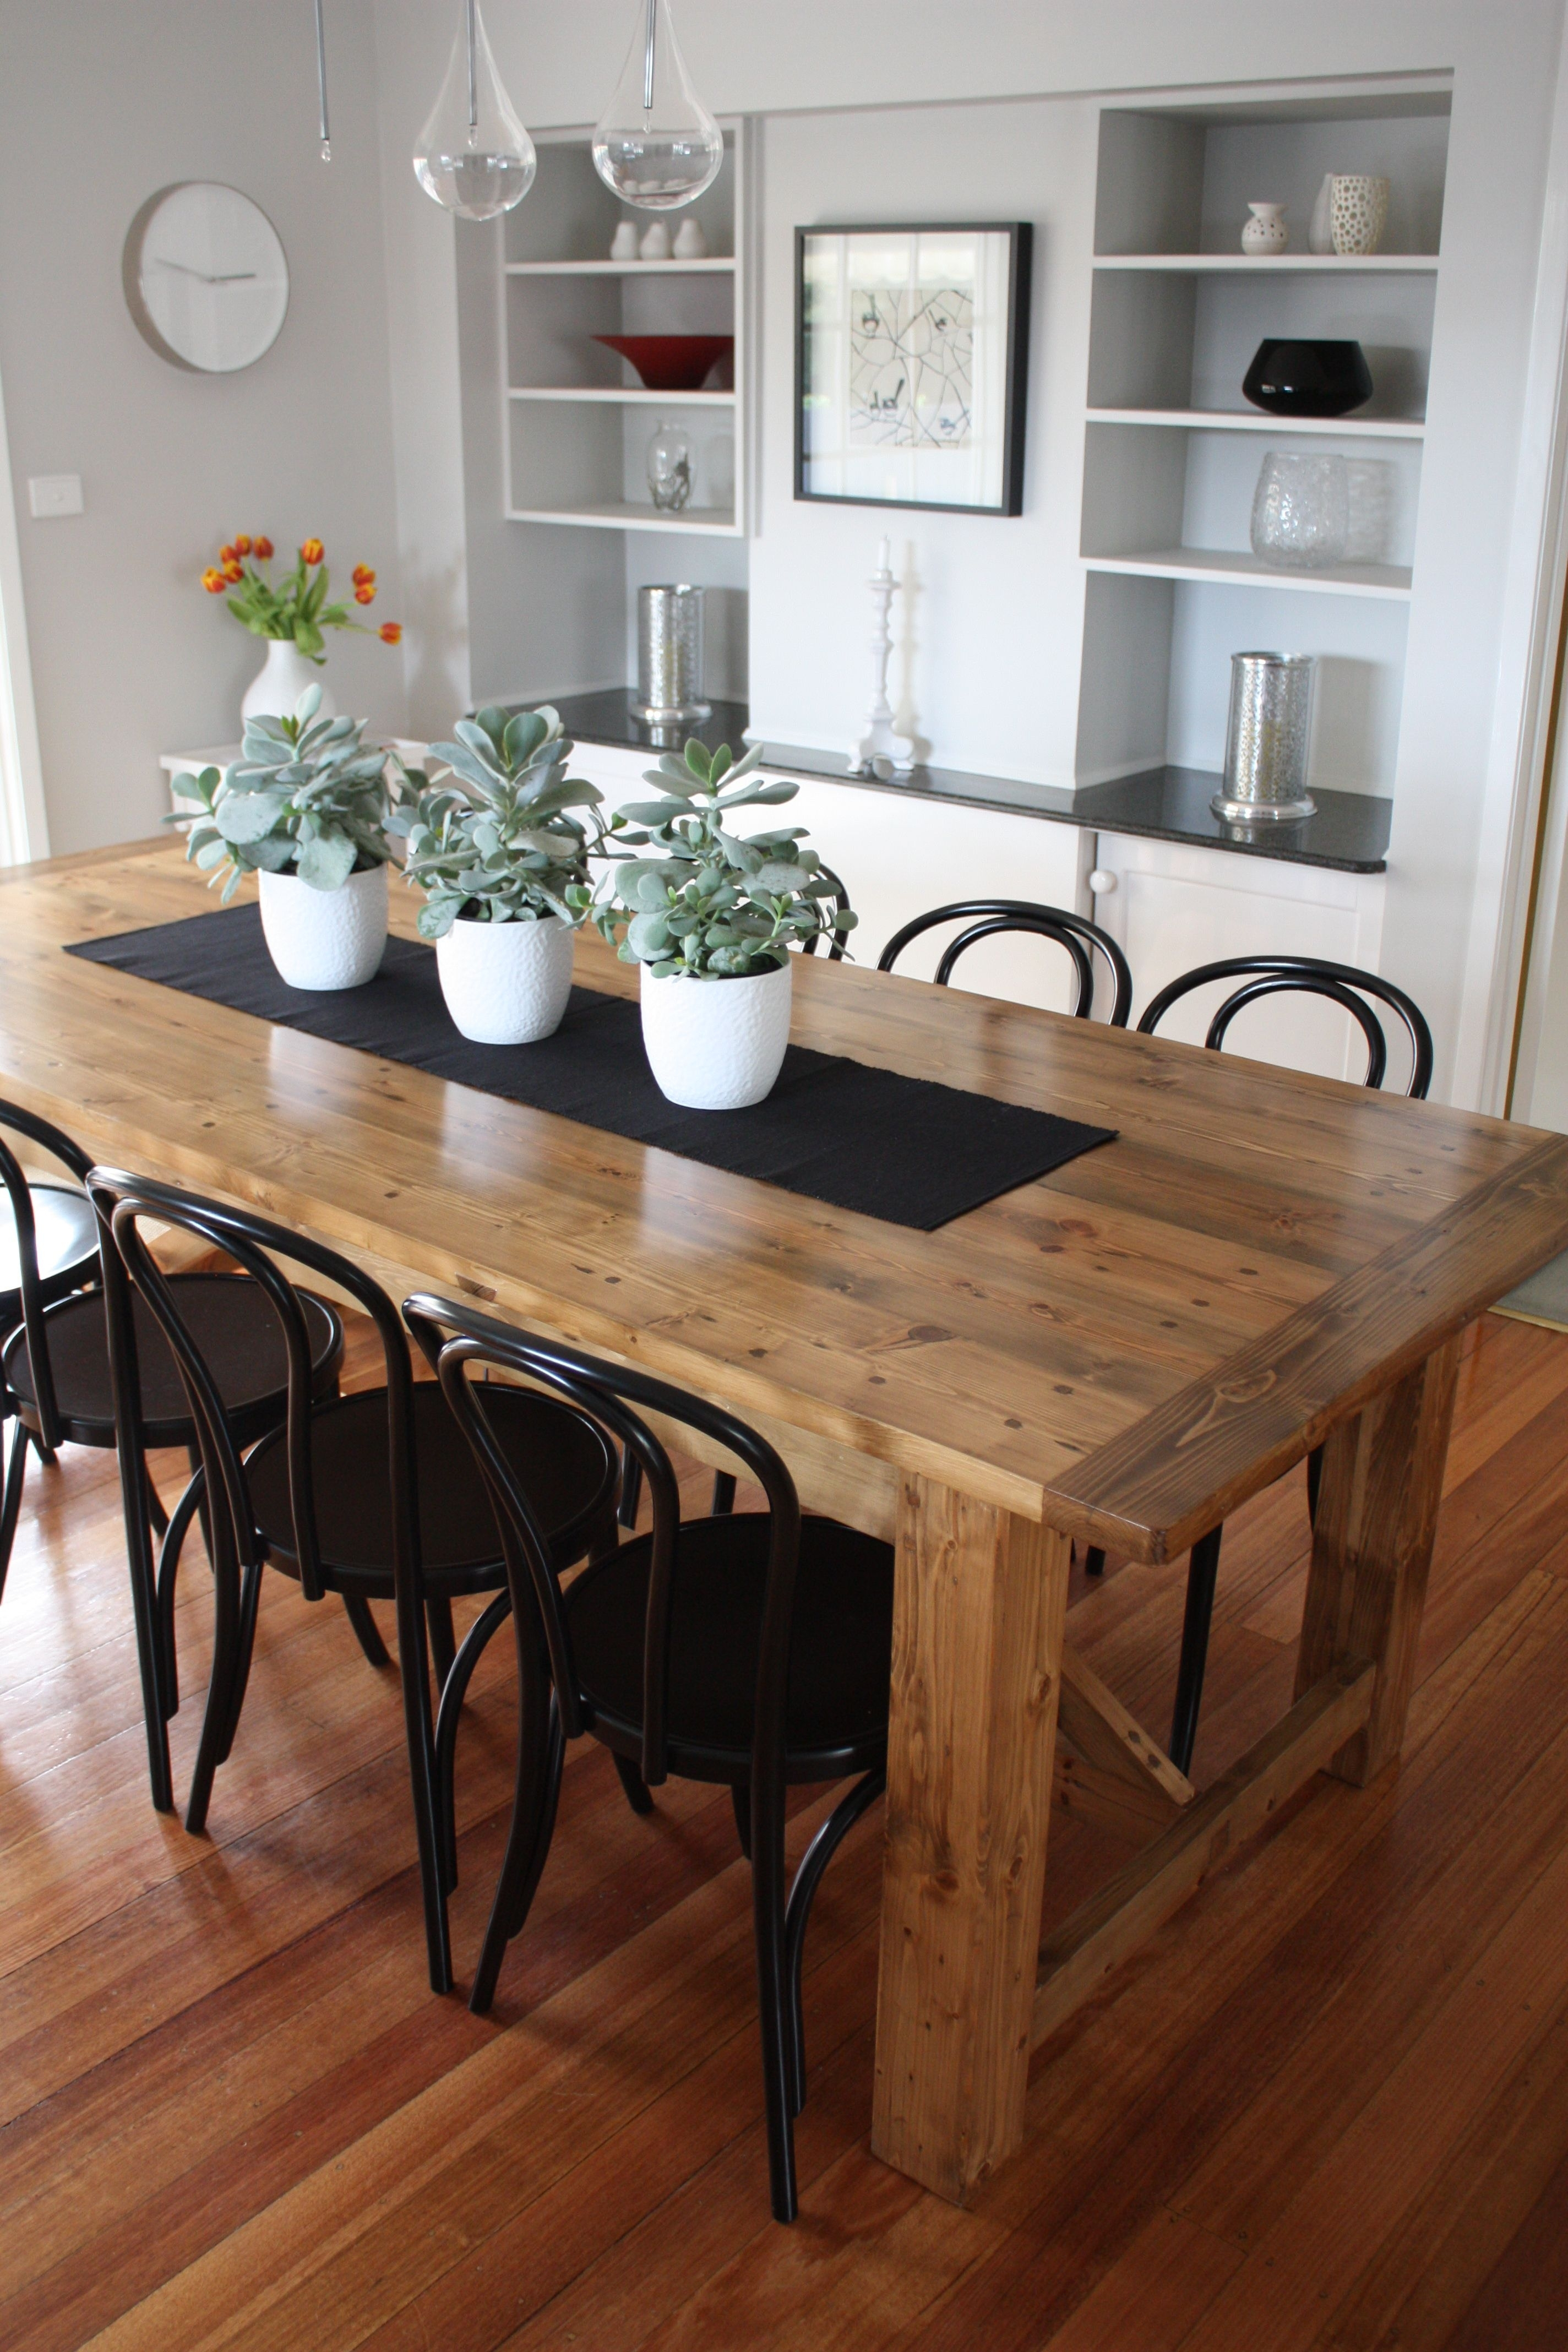 Rustic Dining Table Pairs With Bentwood Chairs | House Interior In 2017 Parquet 6 Piece Dining Sets (Image 14 of 20)